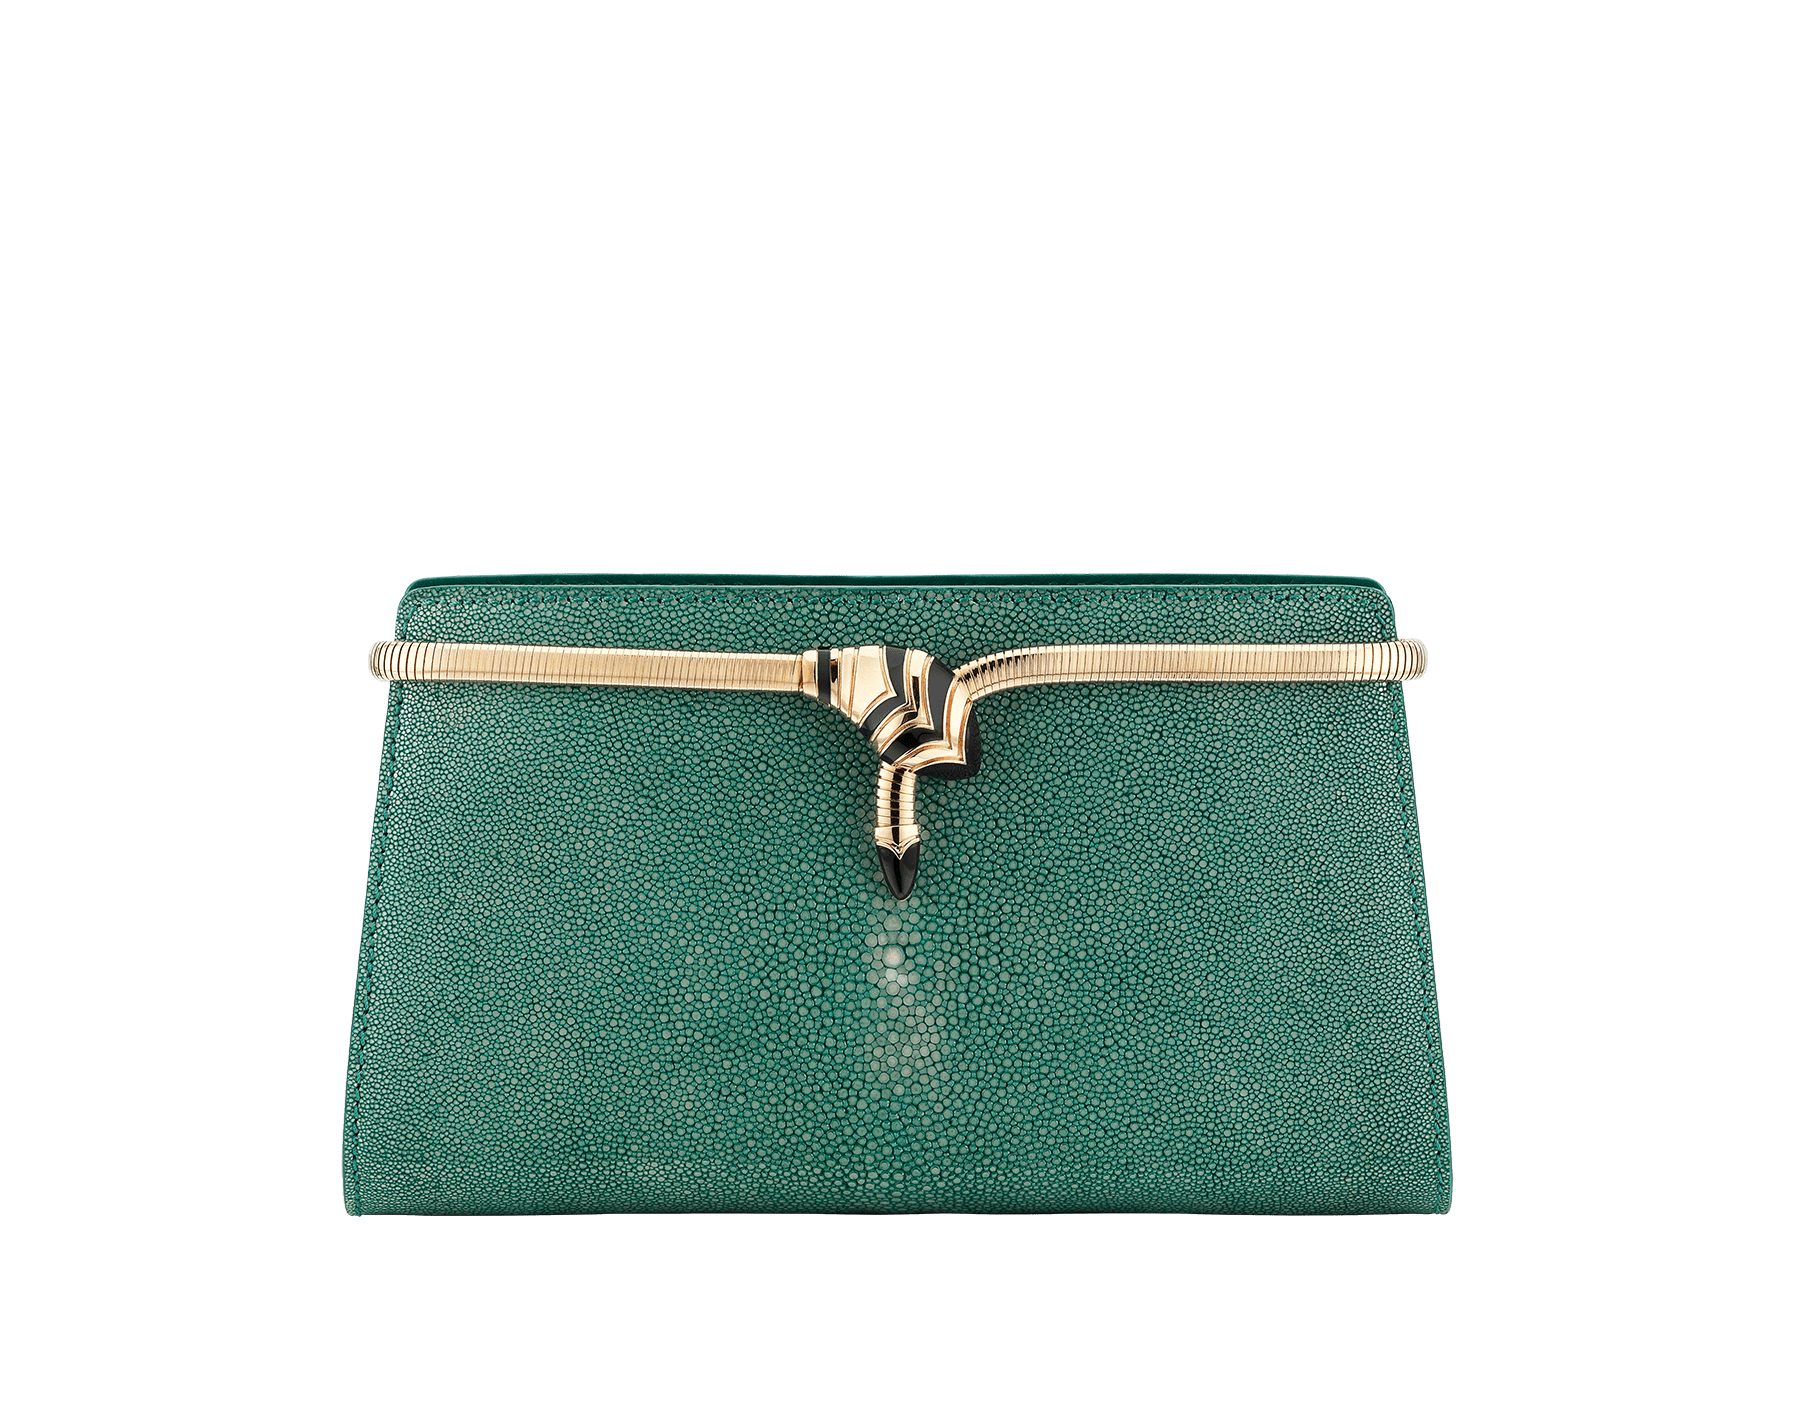 Serpenti Tubogas clutch in green galuchat skin with brass light pink gold plated snake body shaped frame closure with black enamel. 526-001-0671S image 1